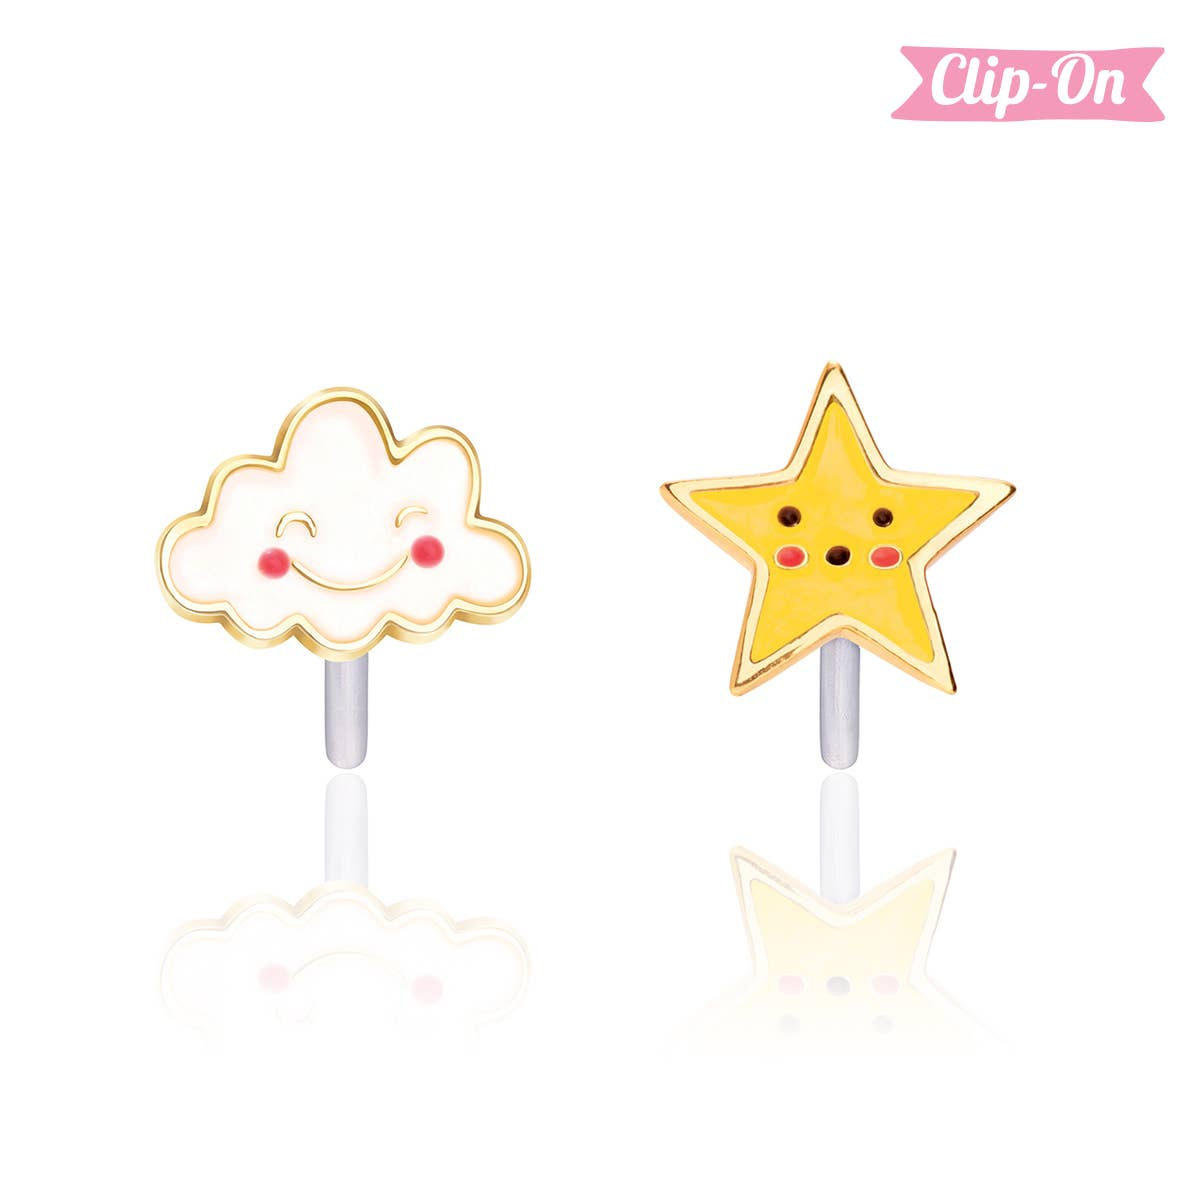 """""""The Perfect Pair""""- Head in the Clouds Clip-On Earrings   Trada Marketplace"""